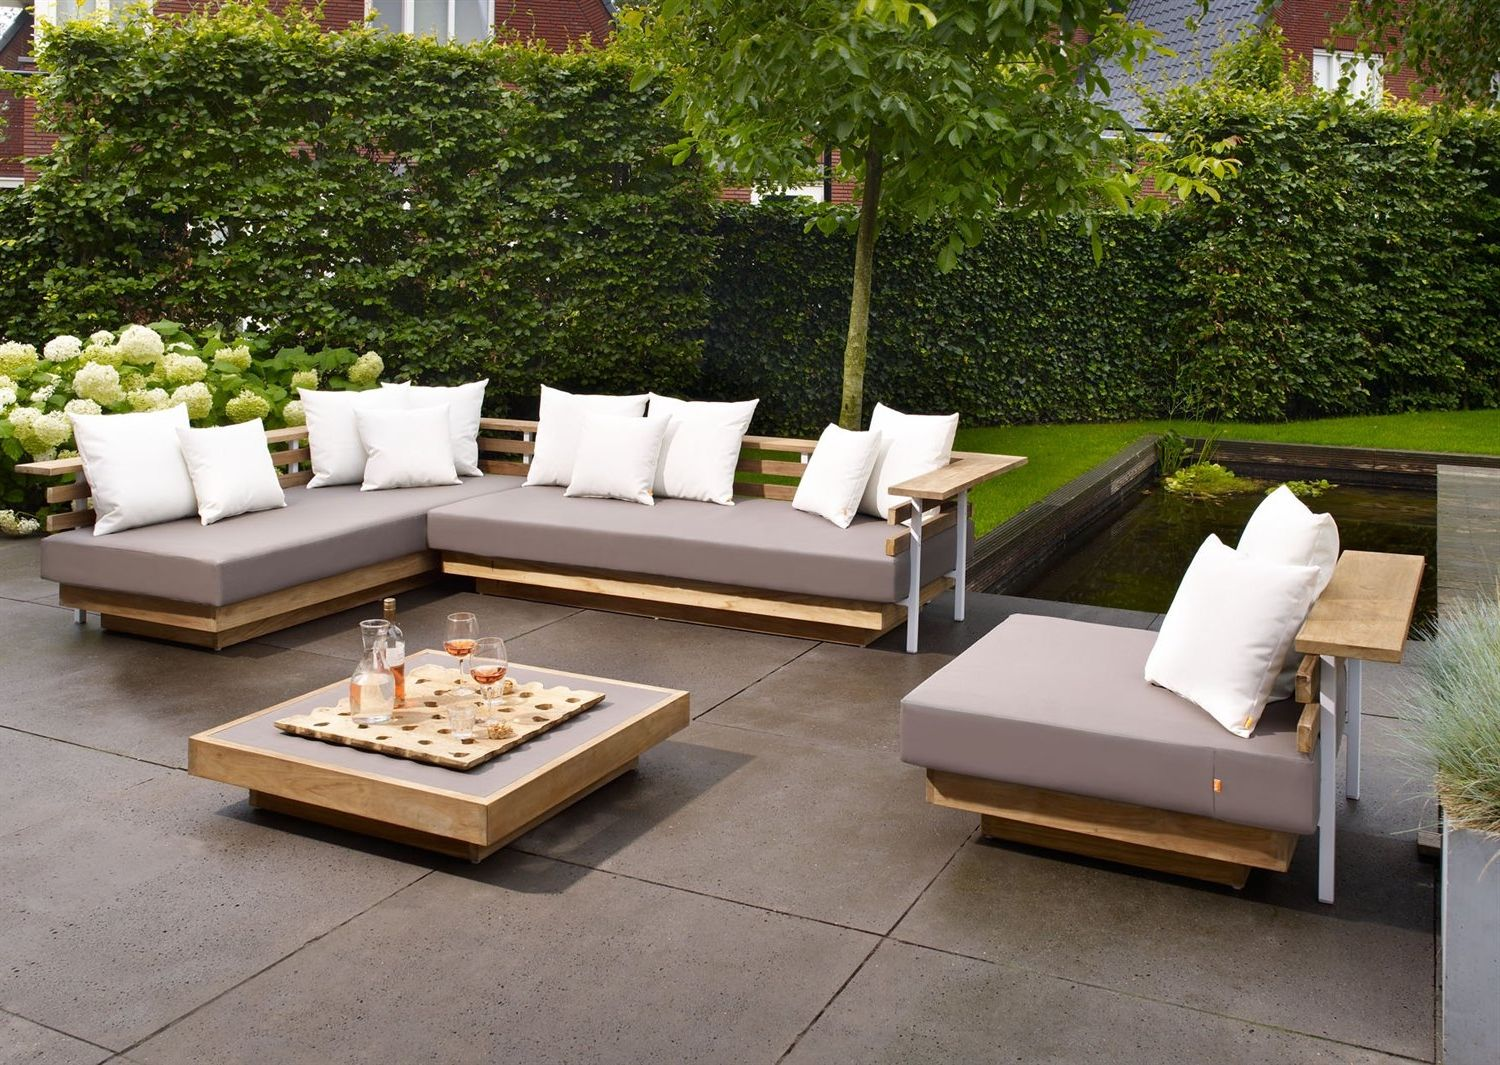 Merveilleux Inspiration Patio Lounge Furniture For Interior Designing Home Ideas With Patio  Lounge Furniture